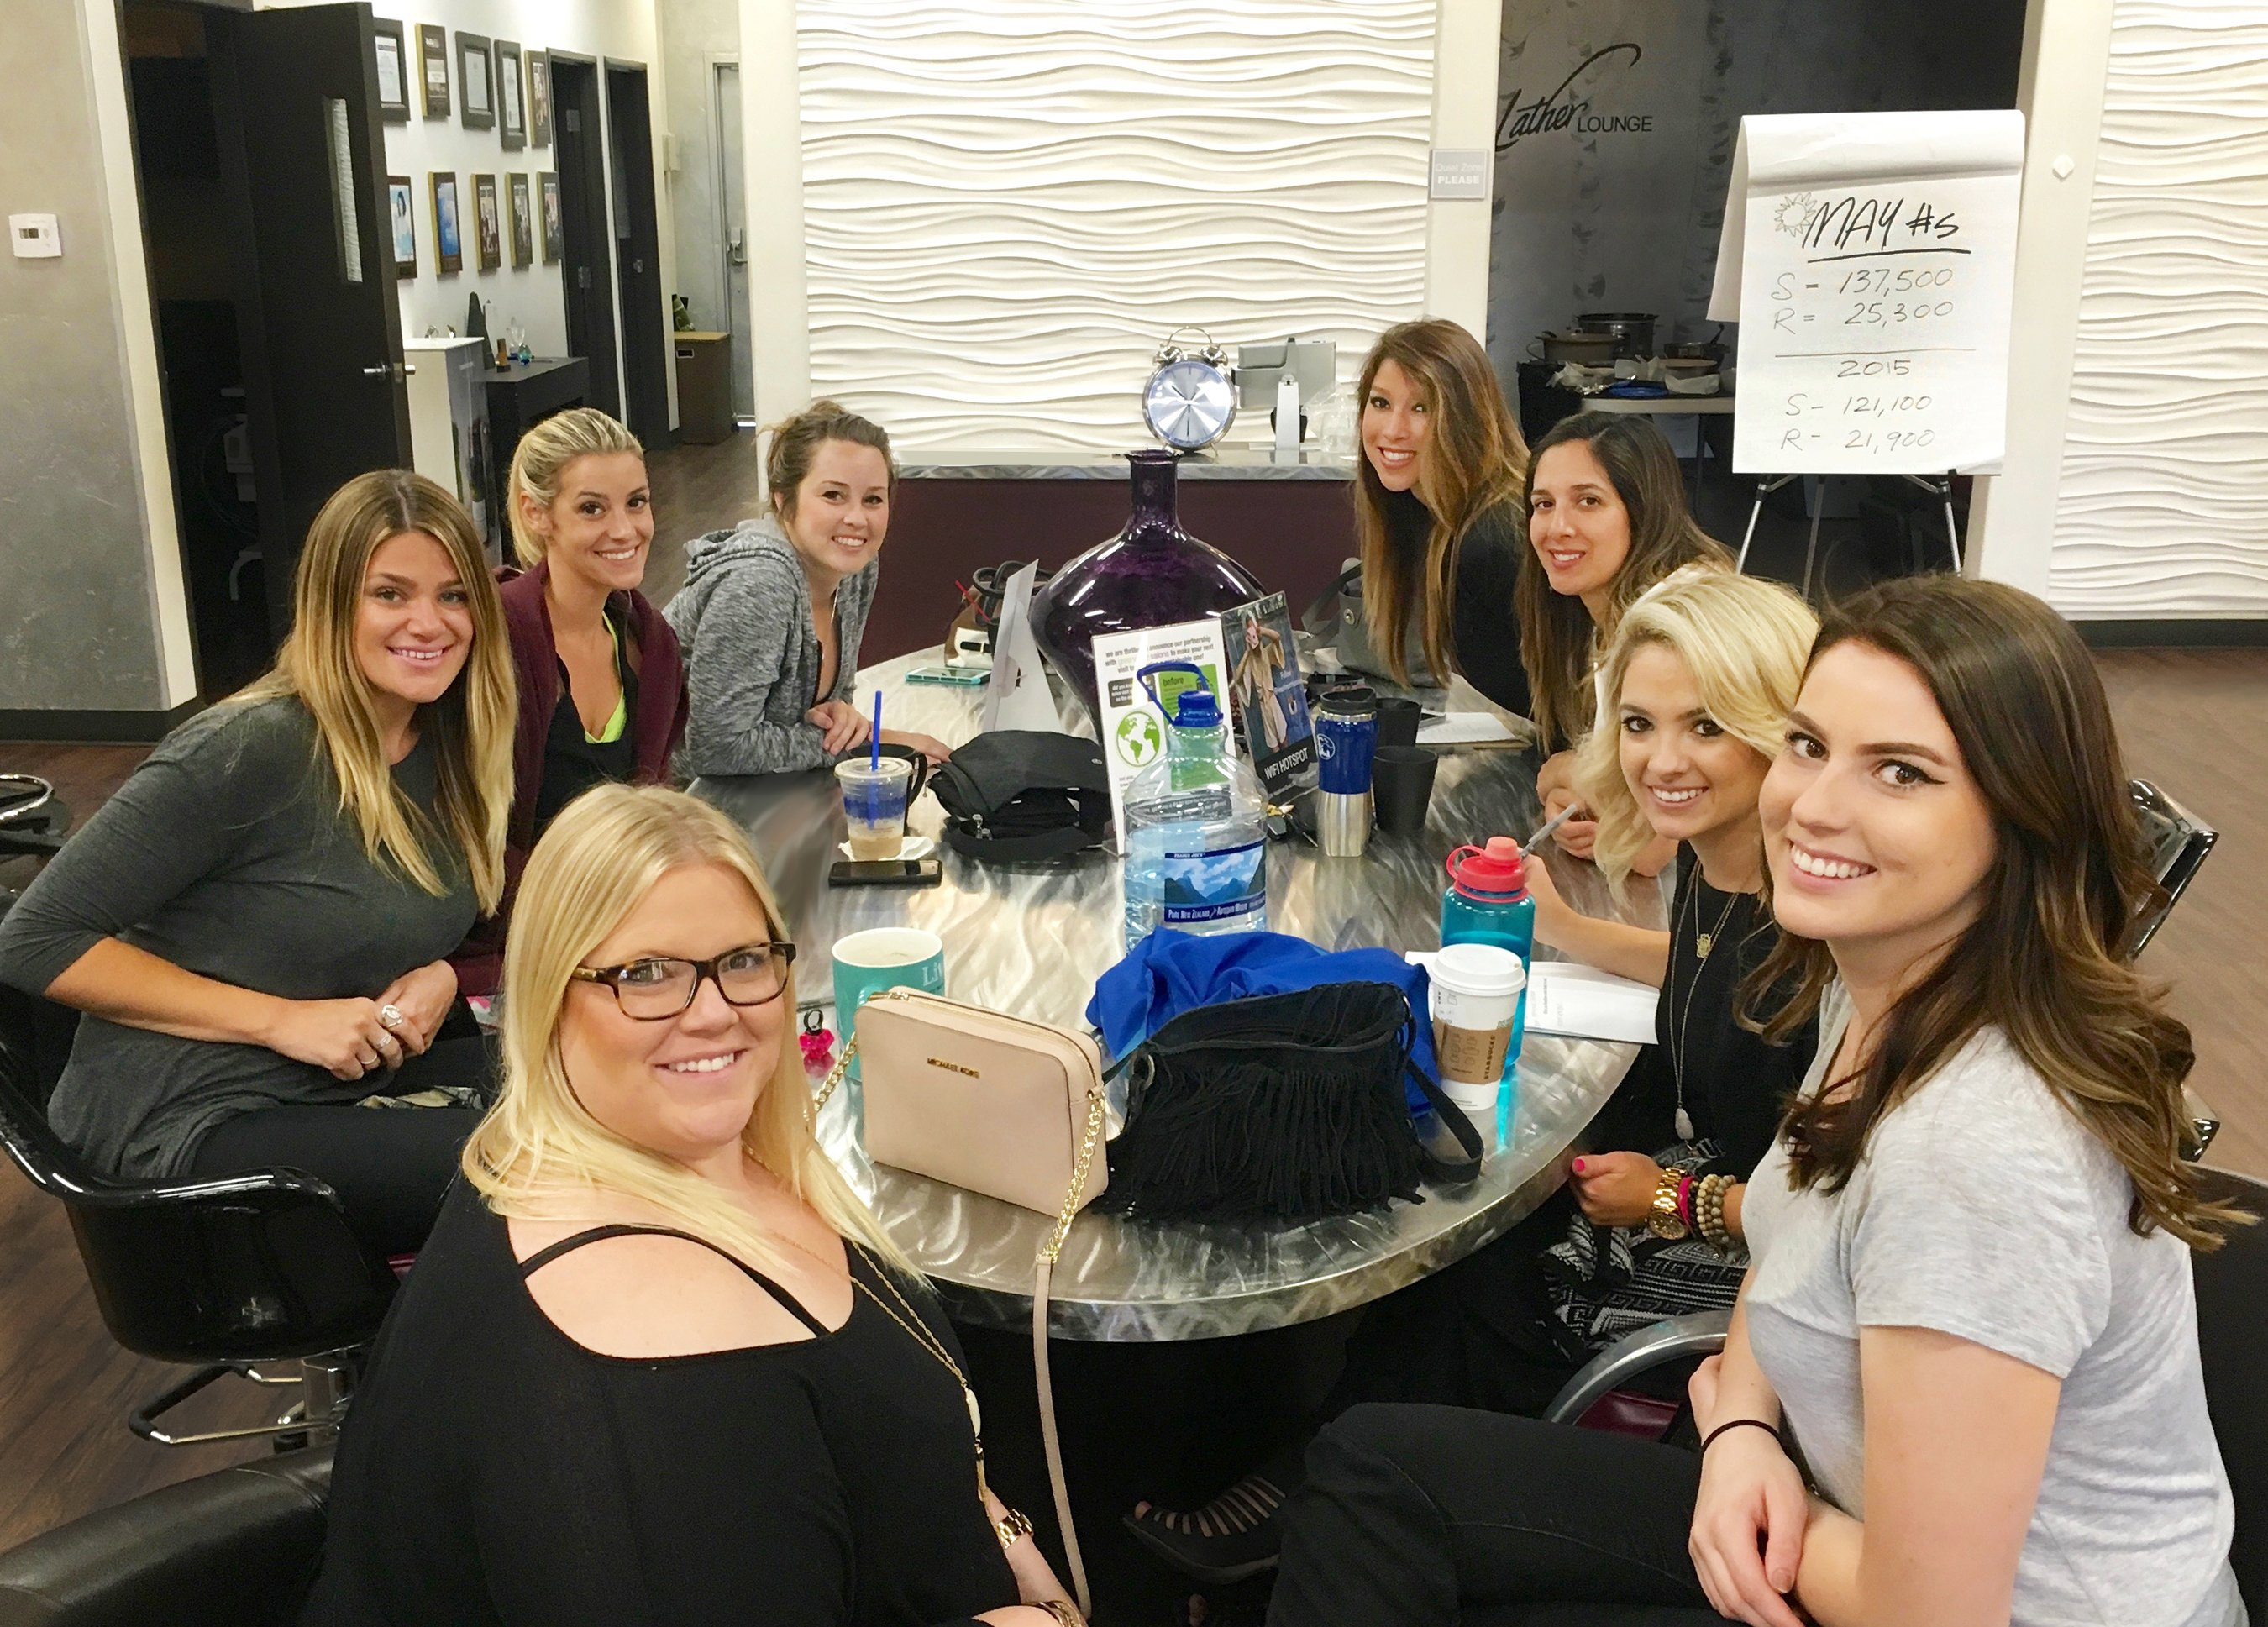 At Headlines The Salon, Culture Guardians meet with their assigned team members regularly to encourage each other on their goals and work on ideas to improve the salon's culture.